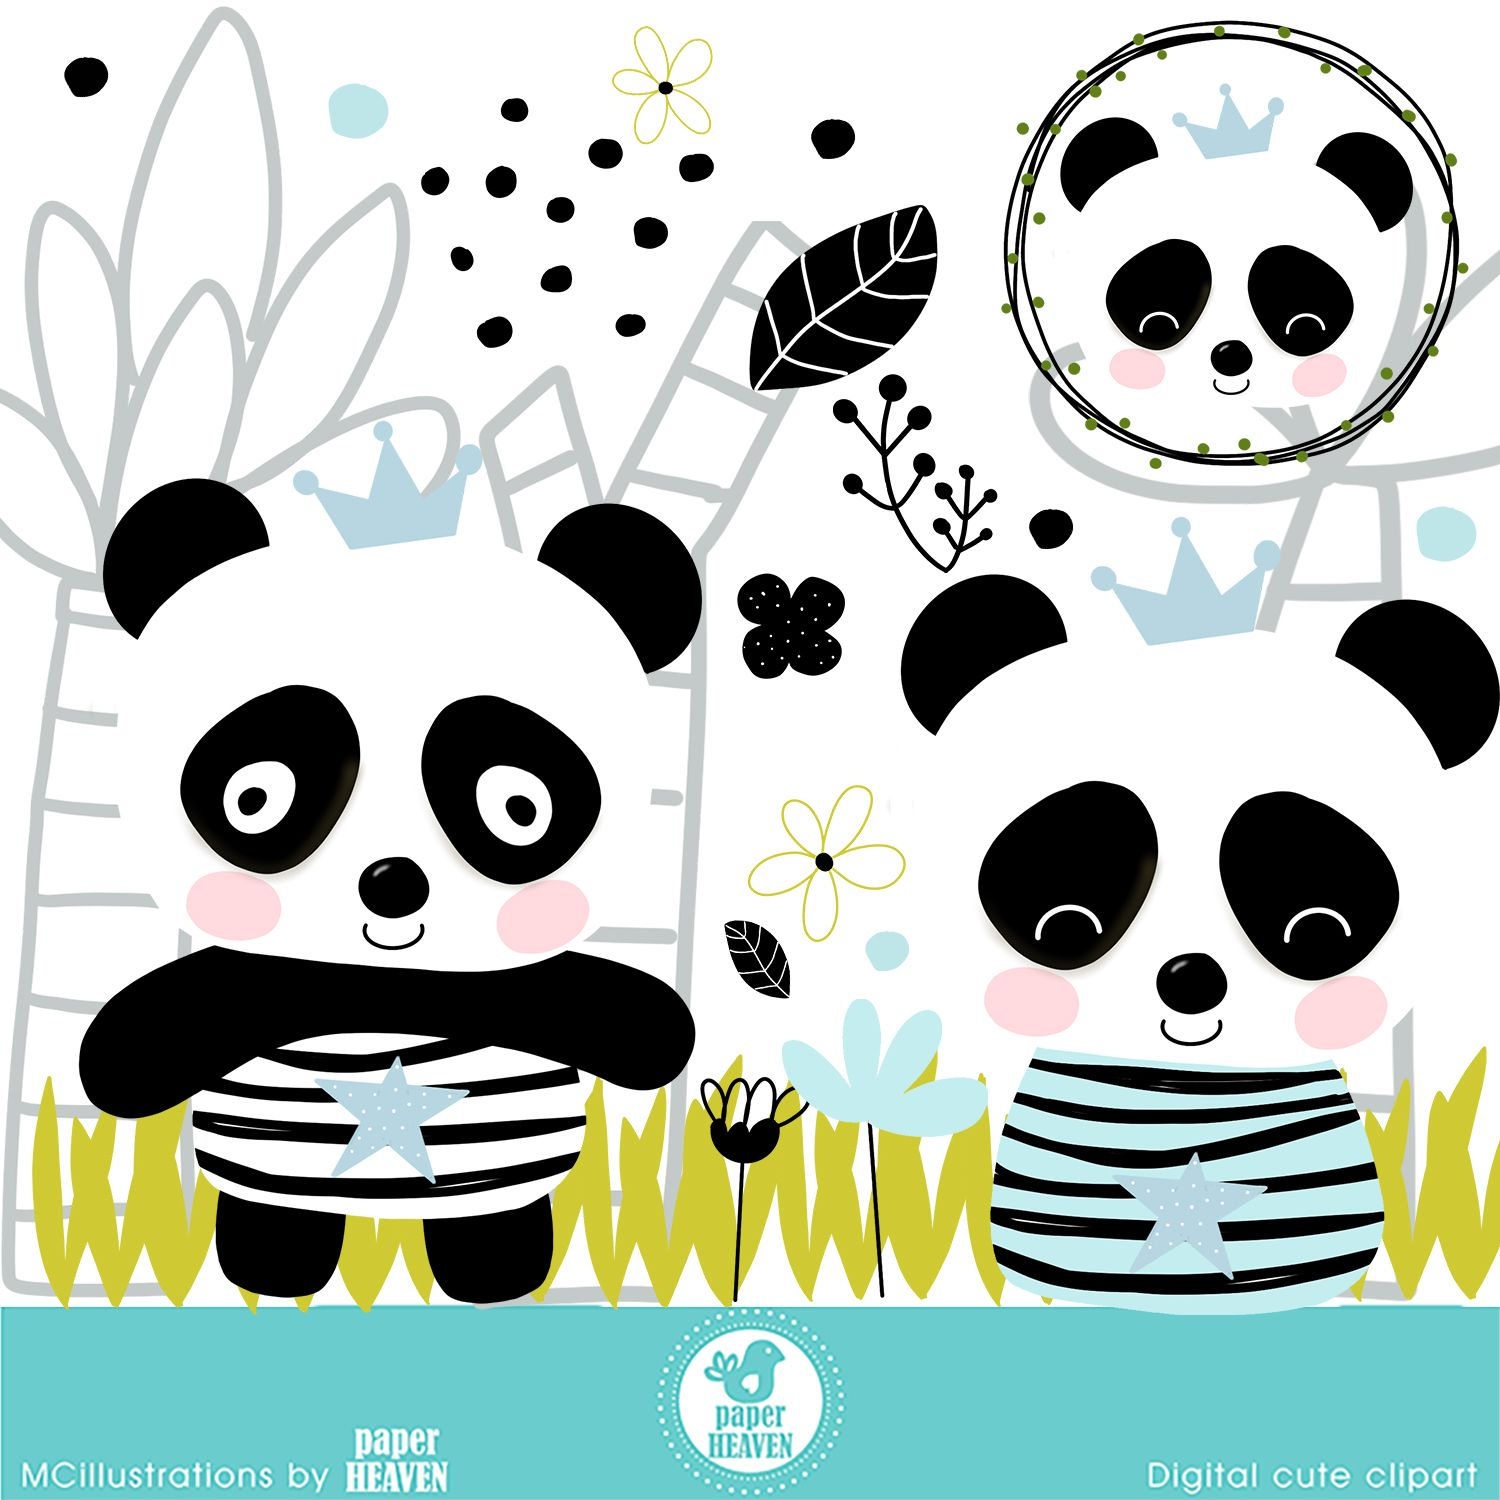 Cute Panda On His Way To School Royalty Free Cliparts, Vectors, And Stock  Illustration. Image 10044896.